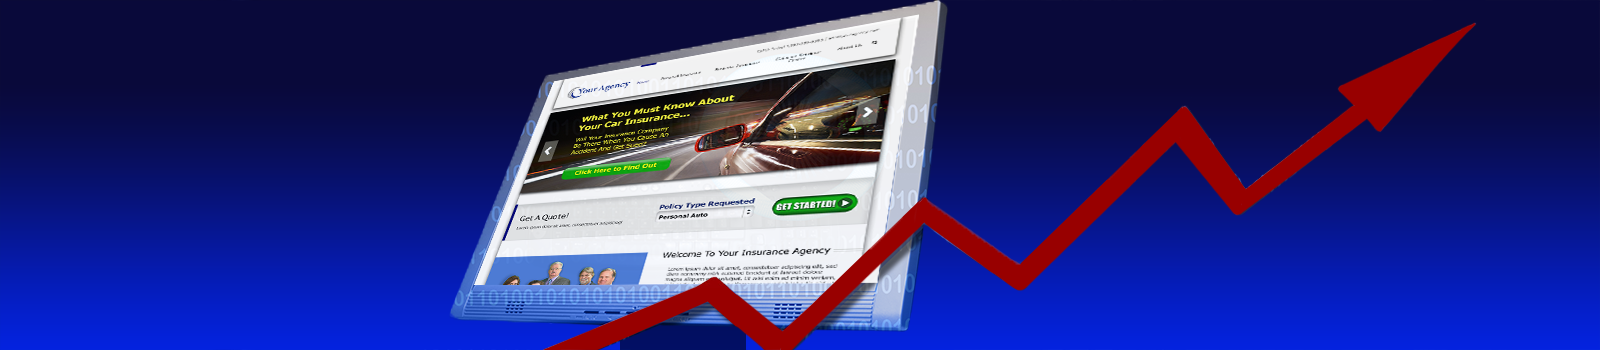 Insurance agency website builder, custom built websites for insurance agencies